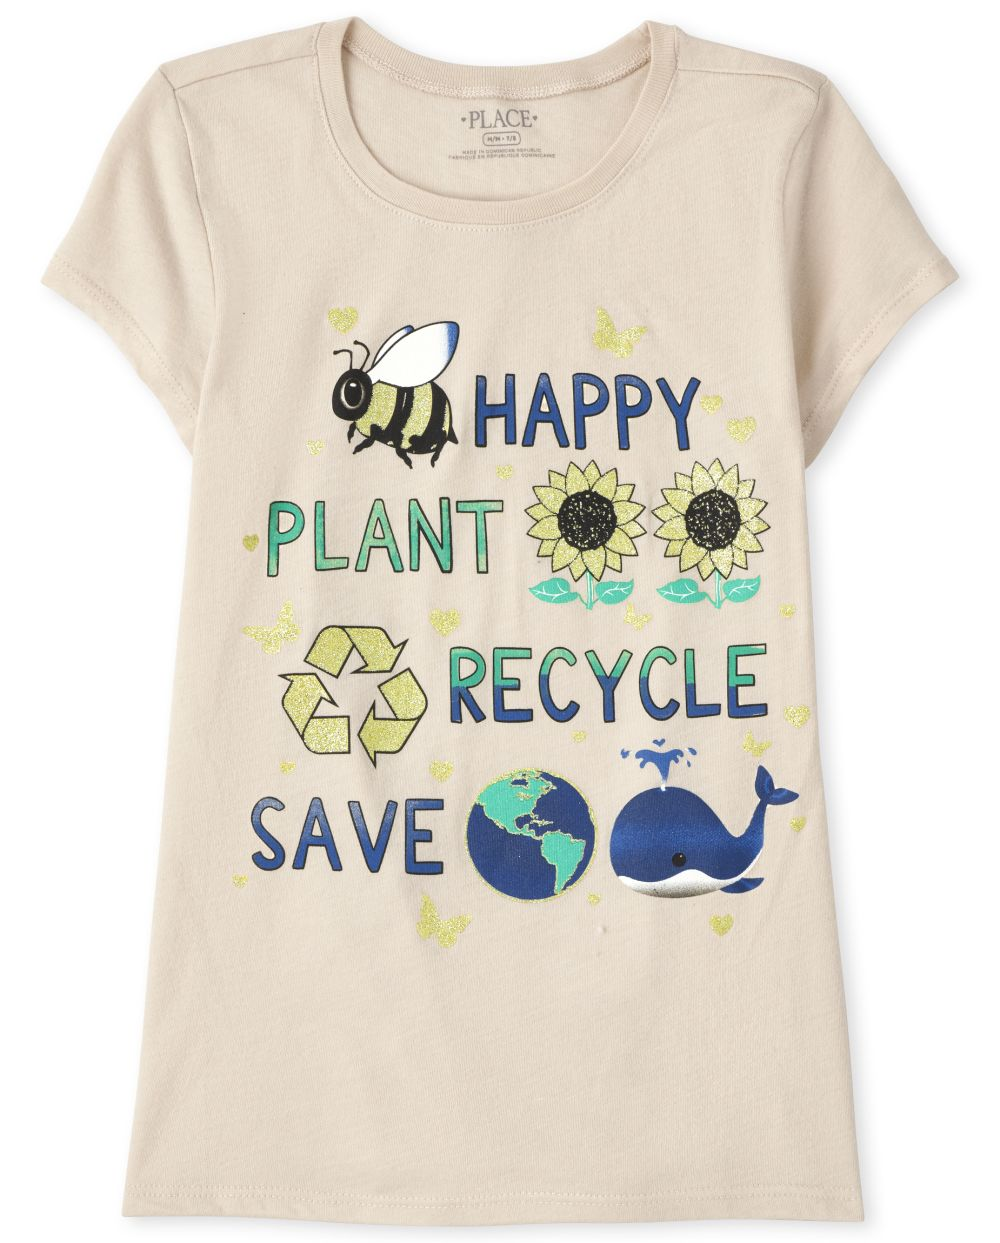 Recycle Graphic Tee - Tan T-Shirt